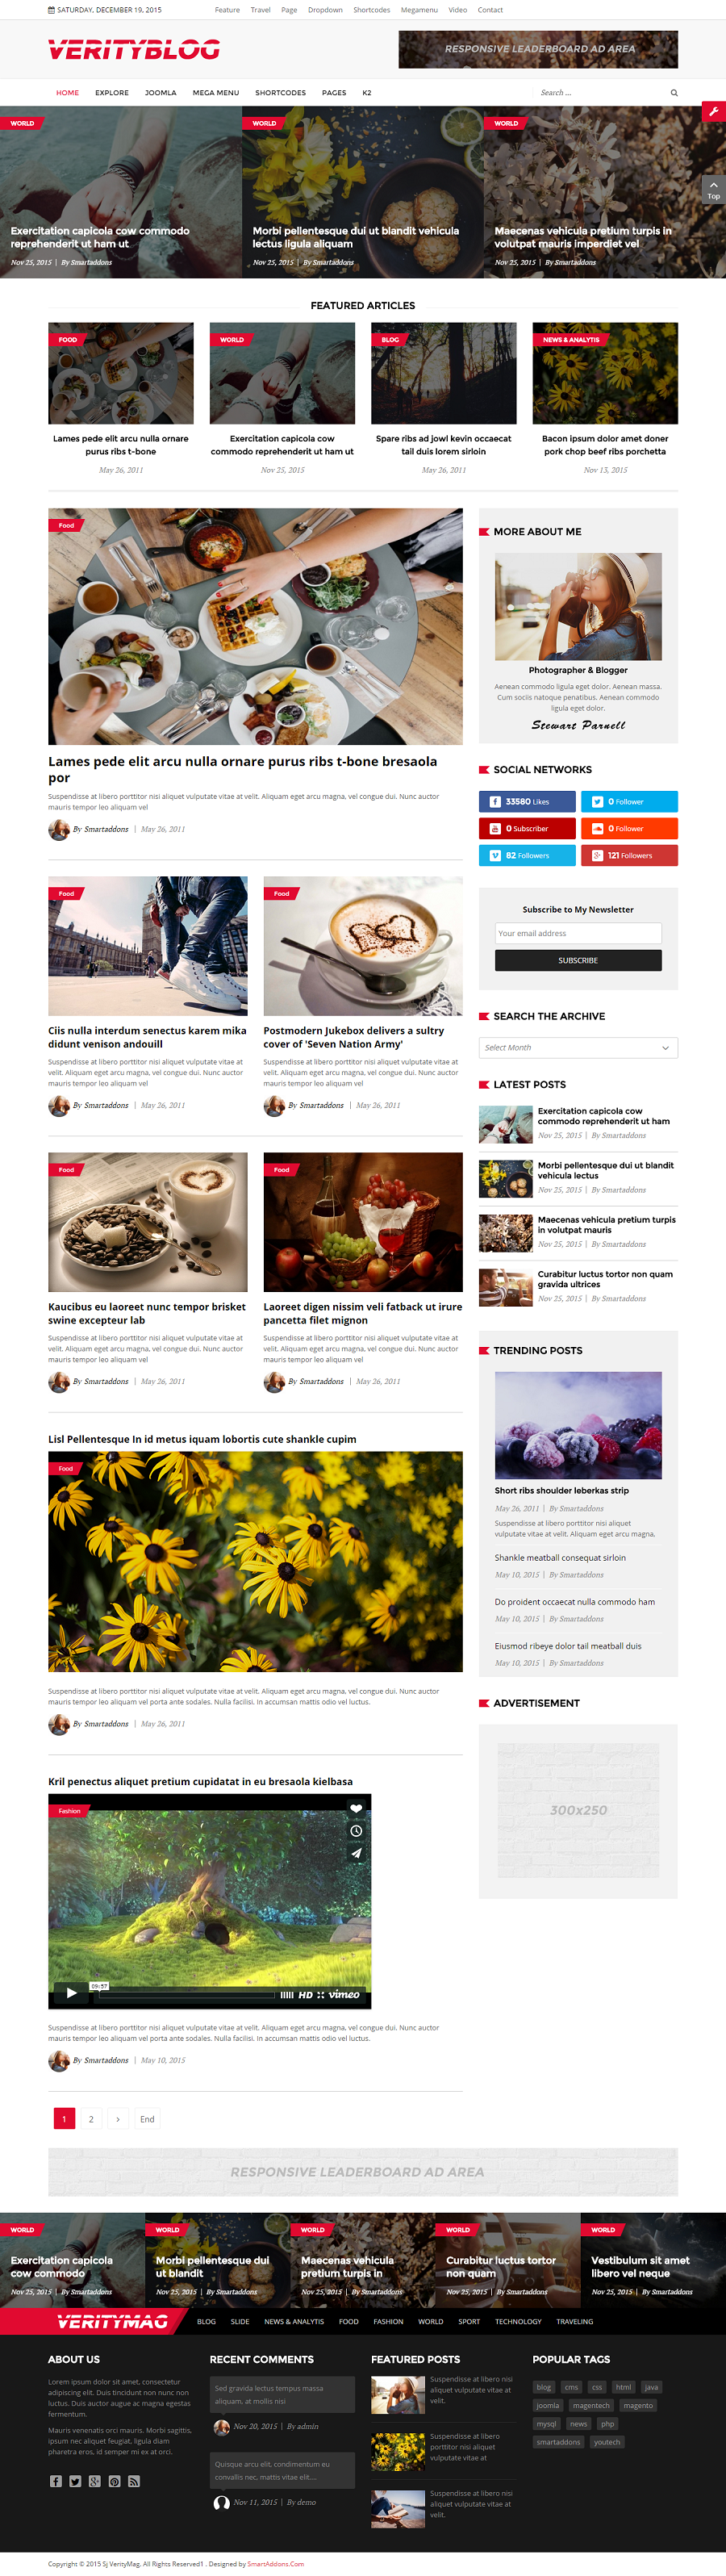 SJ VerityMag - Free Responsive Joomla news magazine Template - 03_home2.png